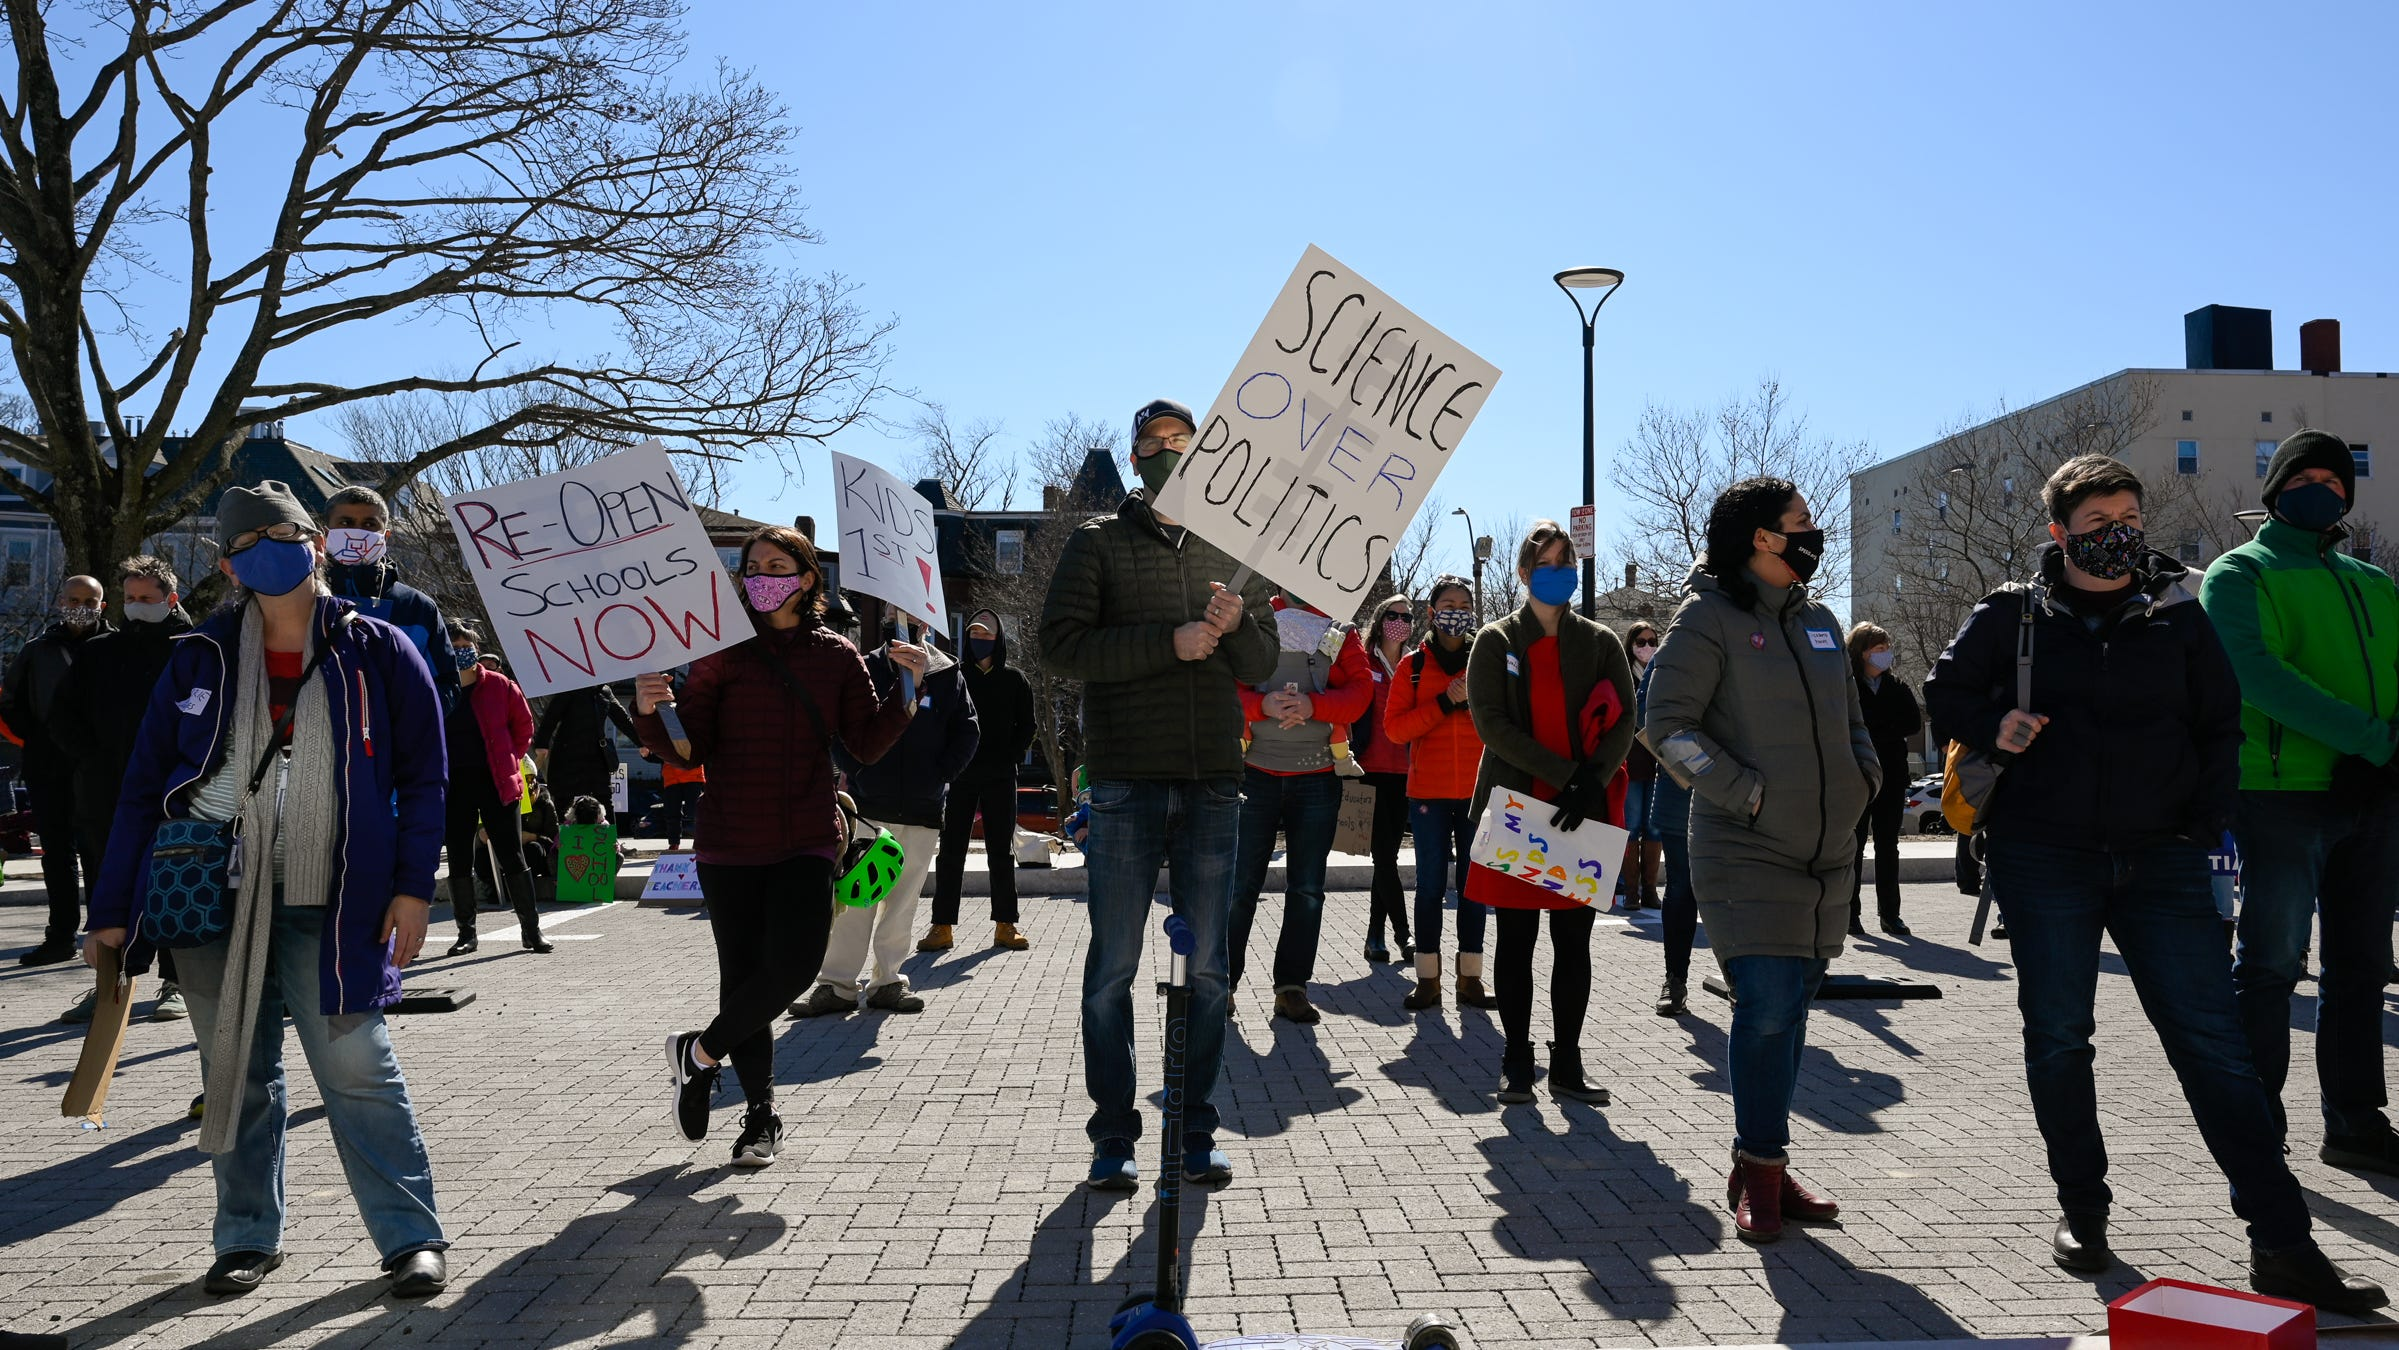 www.wickedlocal.com: Somerville parents call out equity issues in push to reopen schools